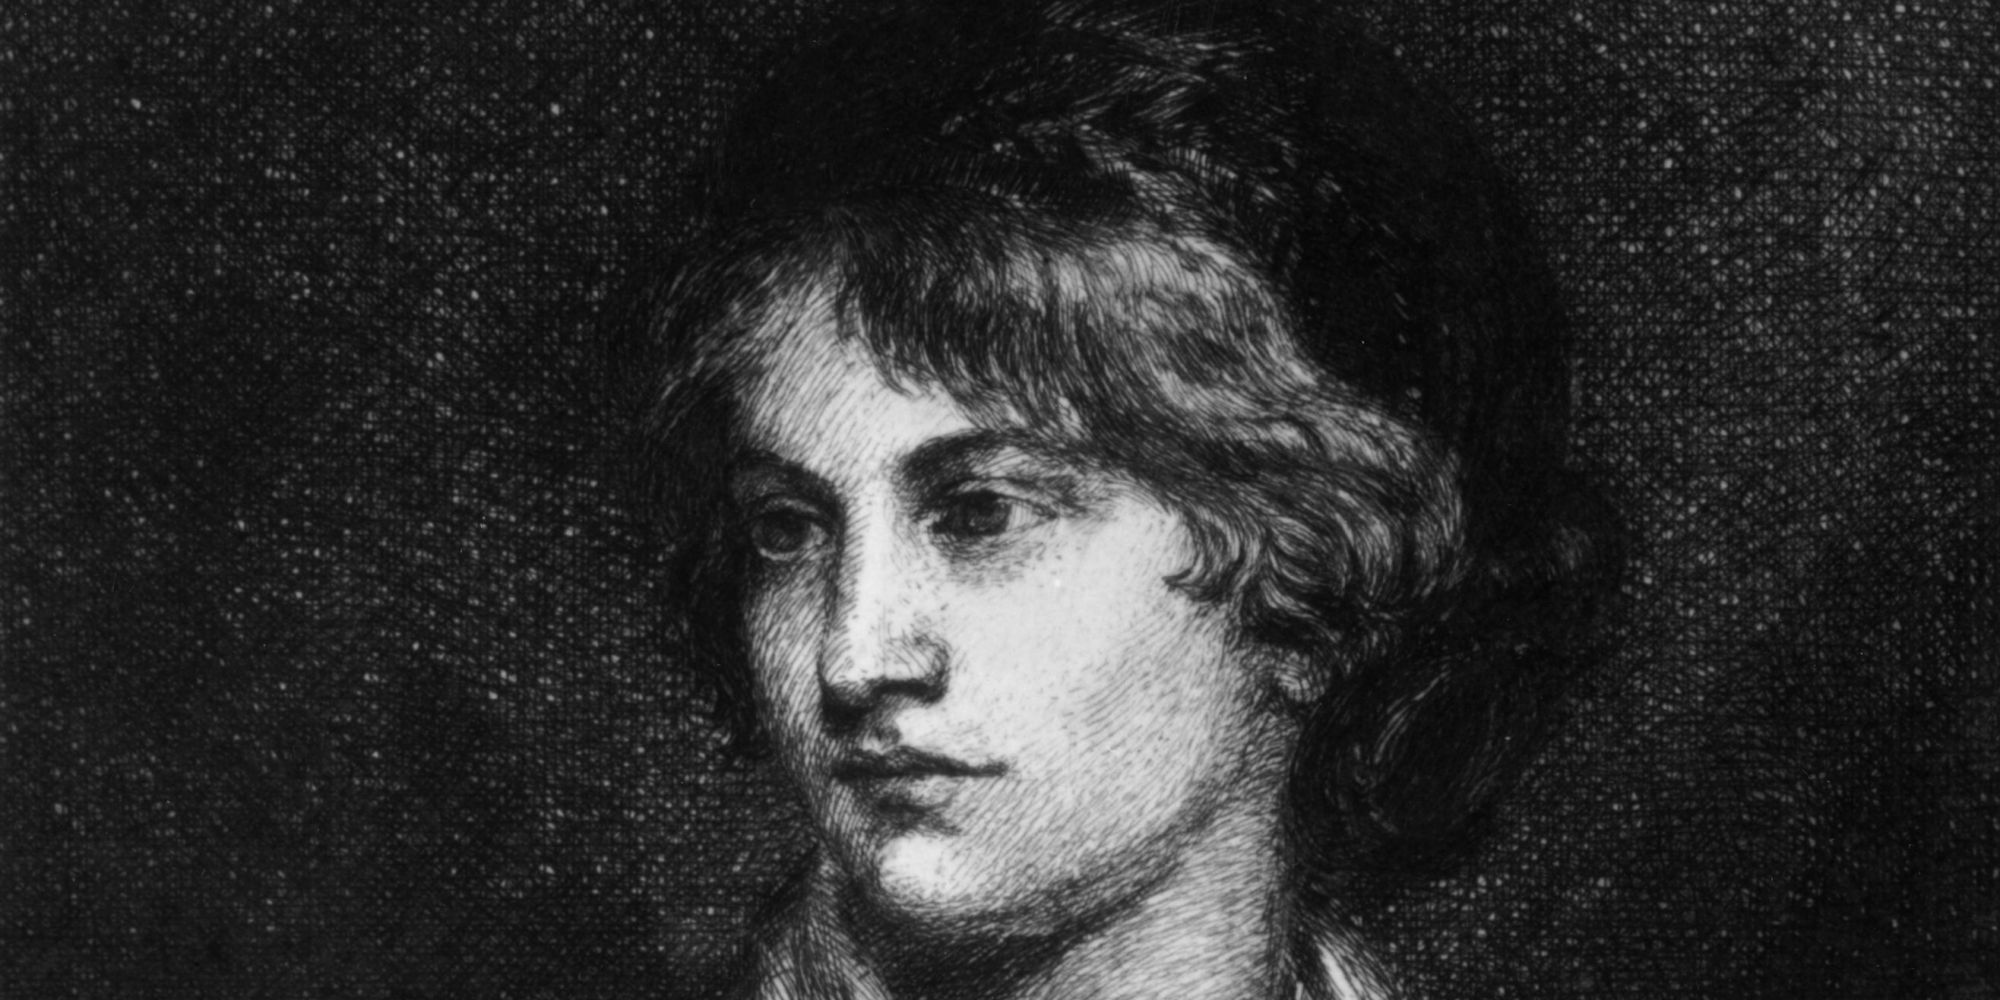 the power of education mary wollstonecraft Laura cereta's defense of the liberal instruction of women, daniel defoe's the education of women, and mary wollstonecraft's a vindication of the rights of women, revolve around the idea that women should share equal rights with men as it relates to education  the power of education: mary wollstonecraft essay.